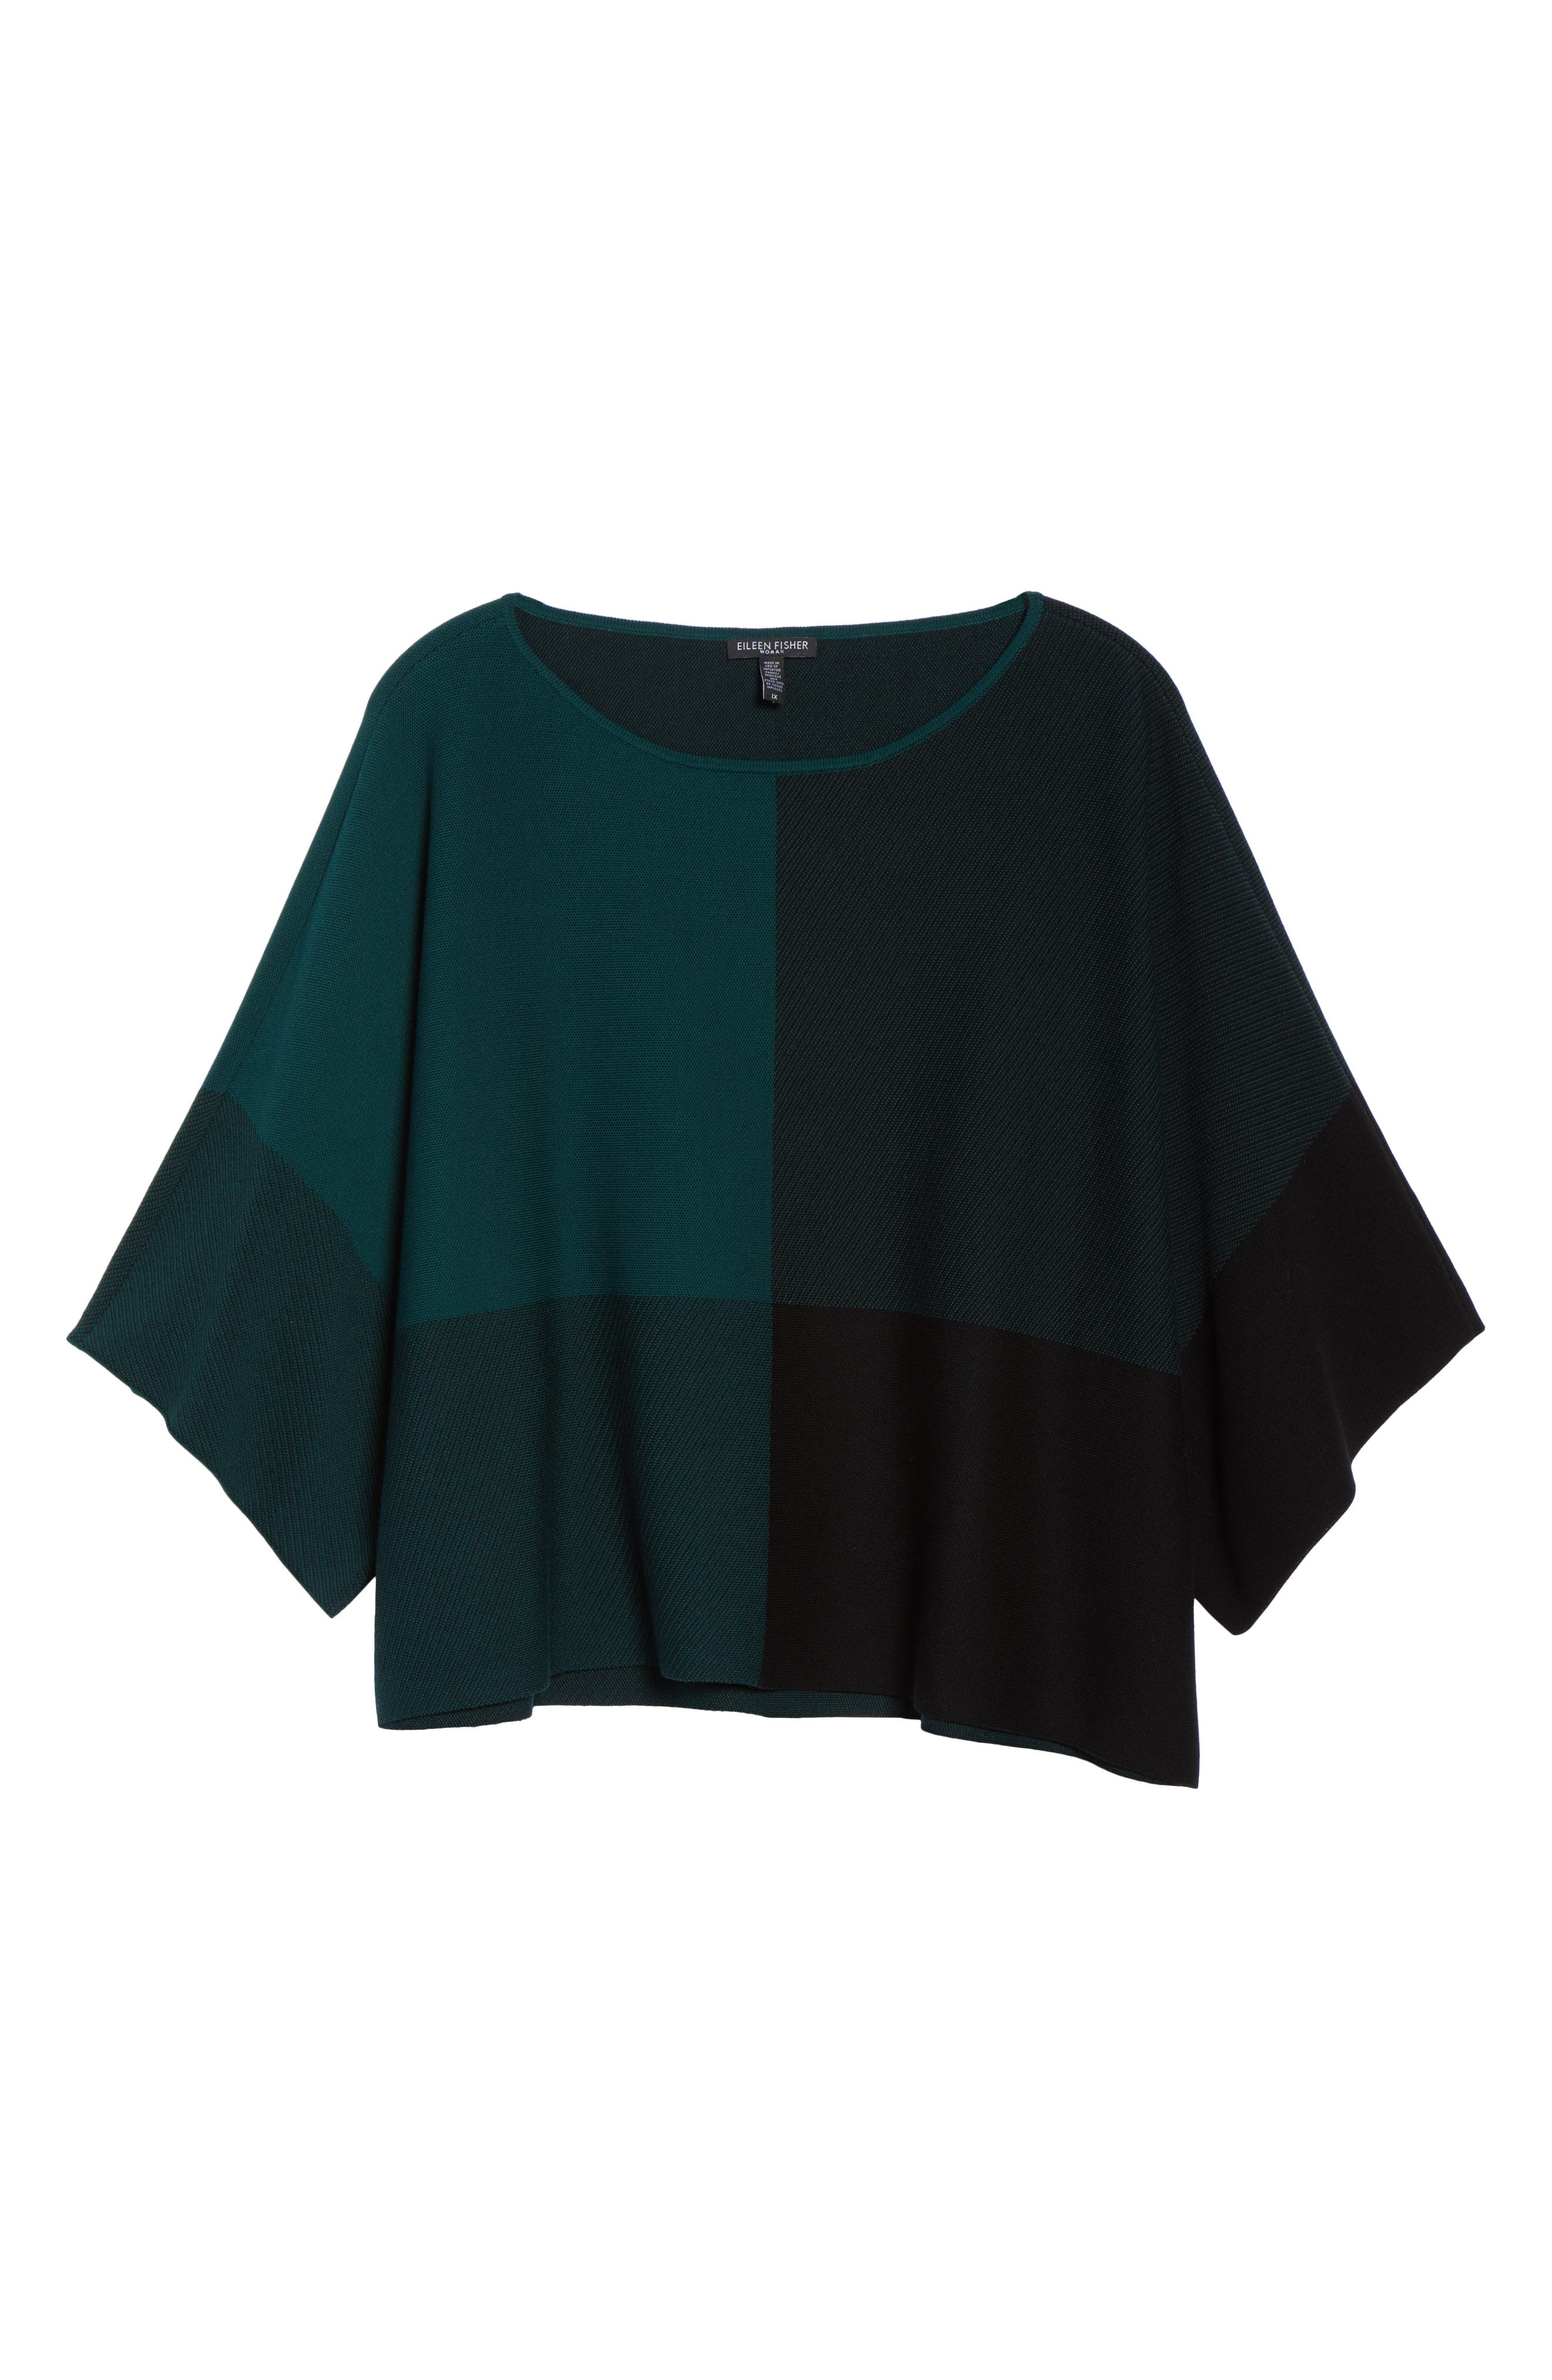 Colorblock Tencel<sup>®</sup> Lyocell Sweater,                             Alternate thumbnail 6, color,                             PINE